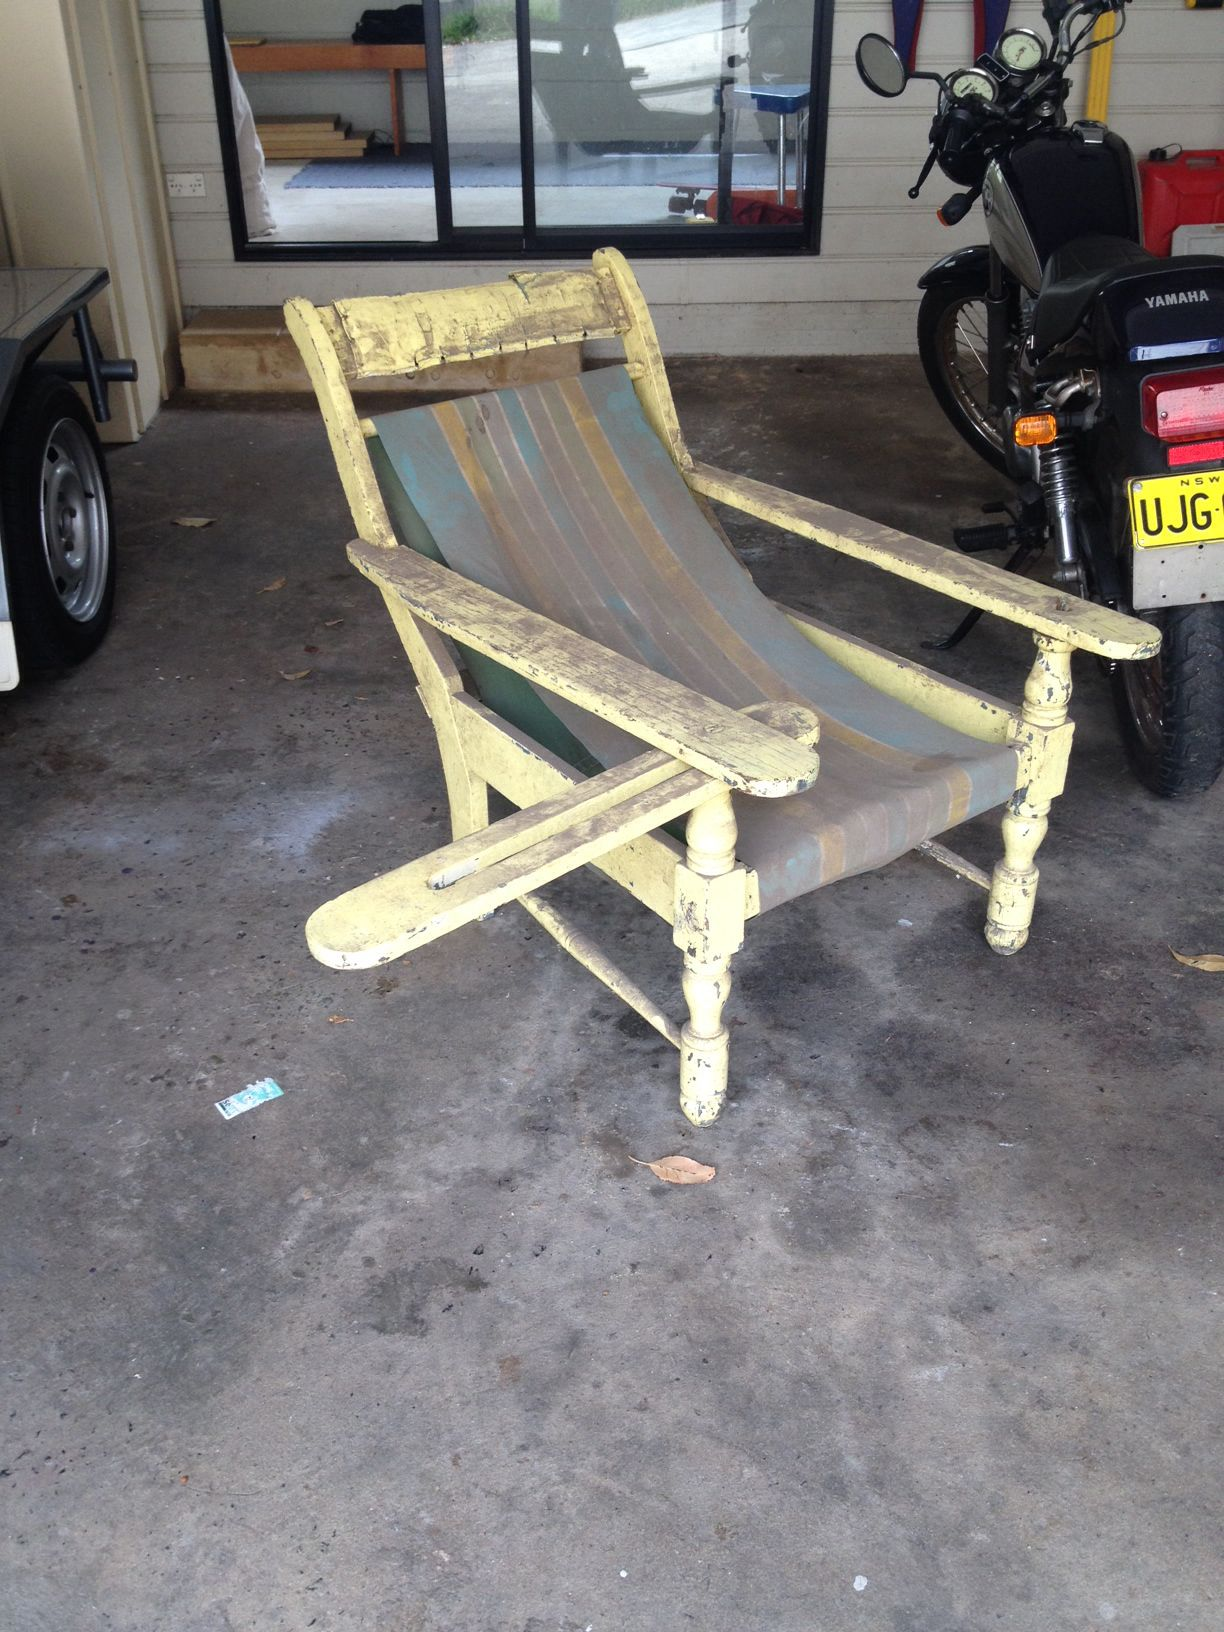 Dusty Old Squatters Chair from a garage sale before clean up and